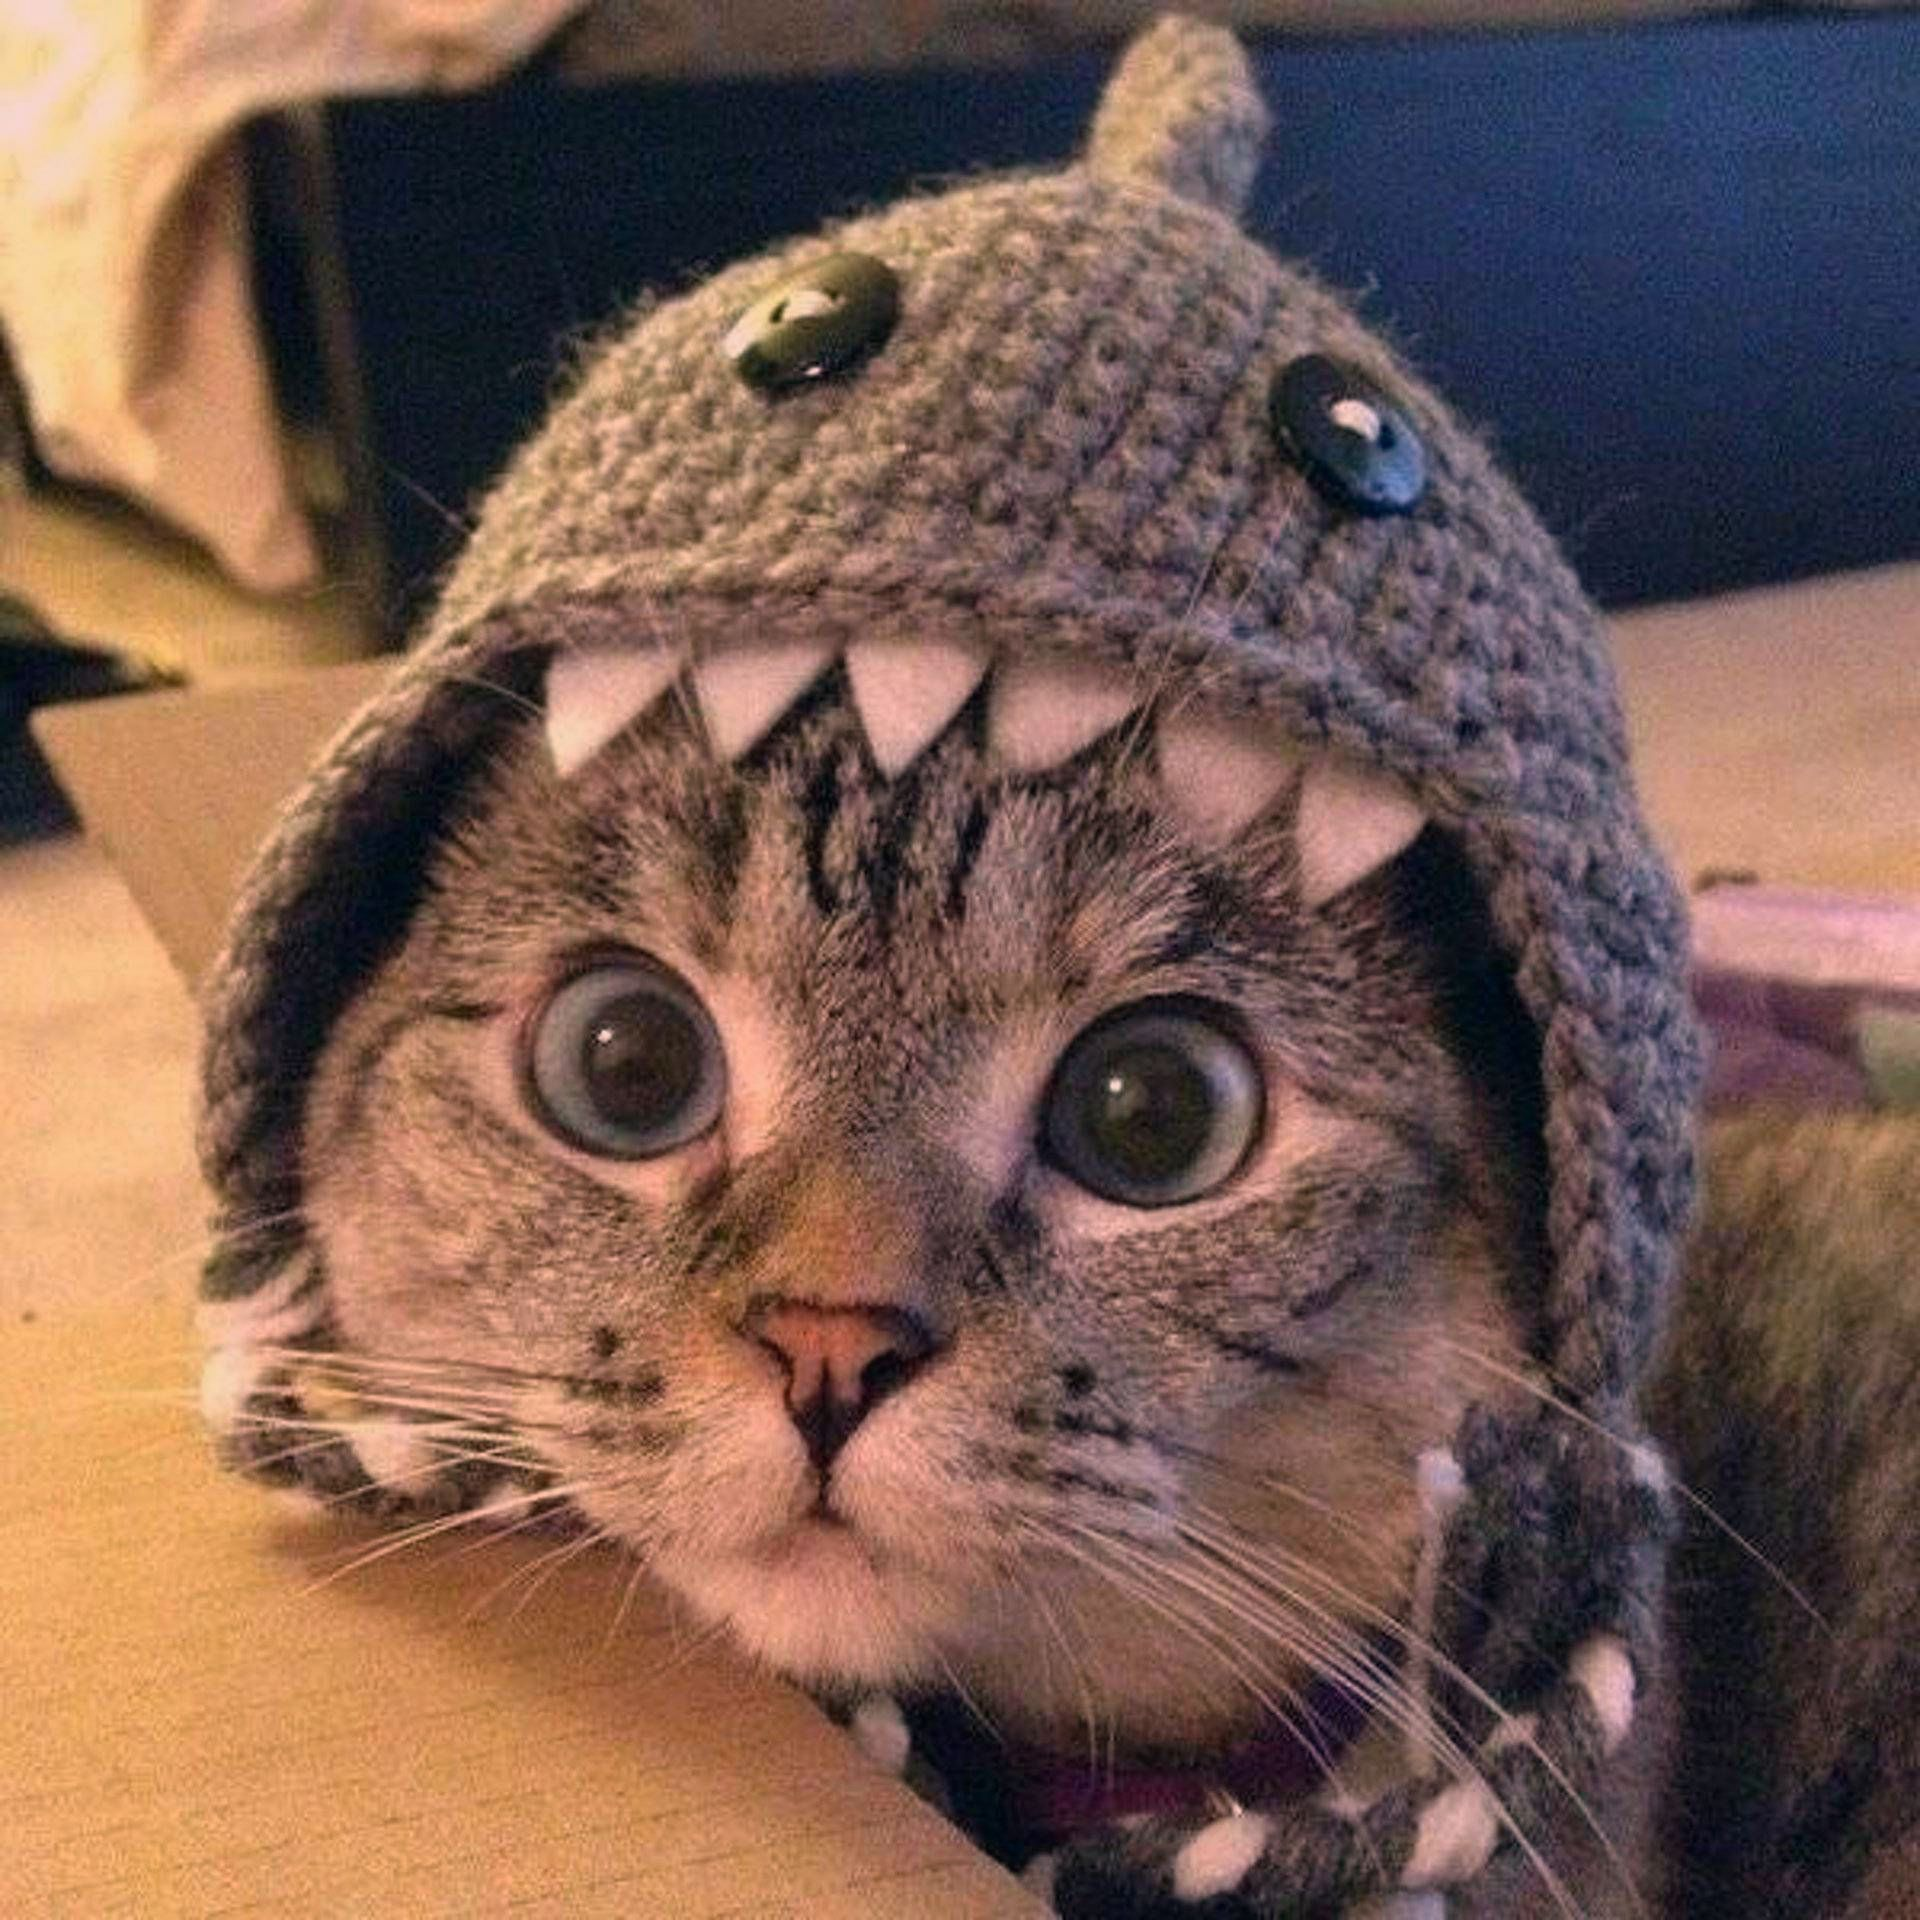 Mews: Funny cat picture collection!   Hope the weather is not as grey and cloudy as it is here! But just in case it is – here are some cute and funny cat photos to brighten up your day. Enjoy and feel free to share your own collection of funny cat photos. 🙂 Picture source Pinterest. So which one was your […]   #Cat, #Cats, #Cute, #Funny, #Katze, #Katzen, #Katzenworld, #Kawaii, #Pets, #ねこ, #猫 #Mews